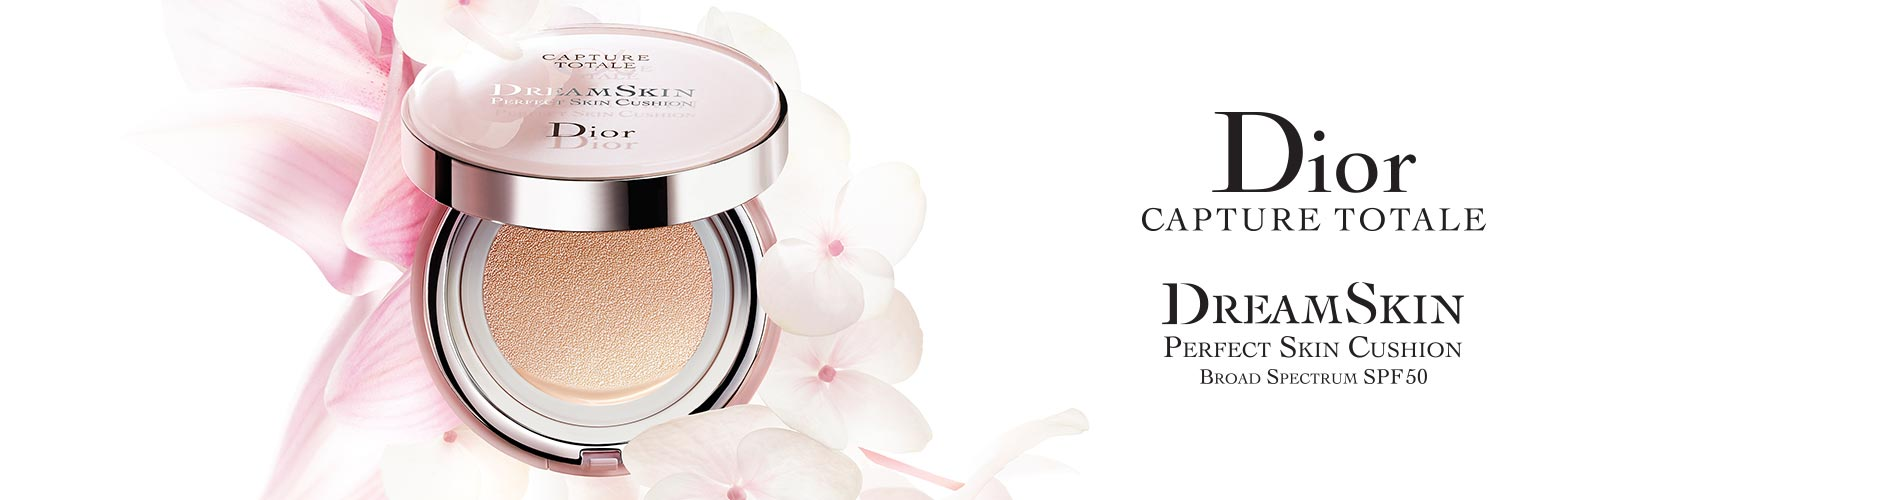 Dior: Capture Totale - Dream Skin, Perfect skin cushion - Broad spectrum SPF50